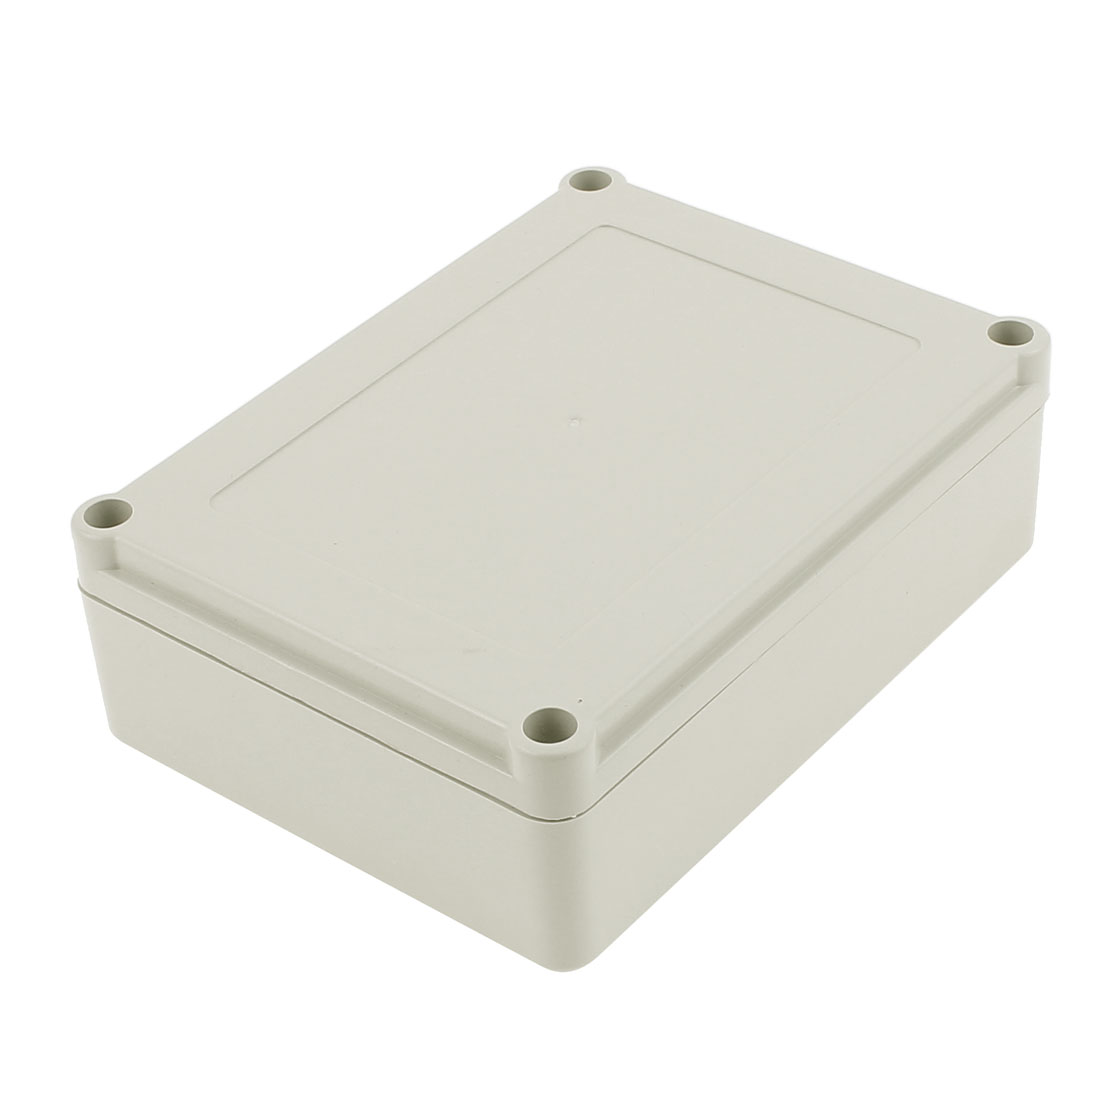 140 x 105 x 45mm Dustproof IP65 Junction Box DIY Terminal Connecting Enclosure